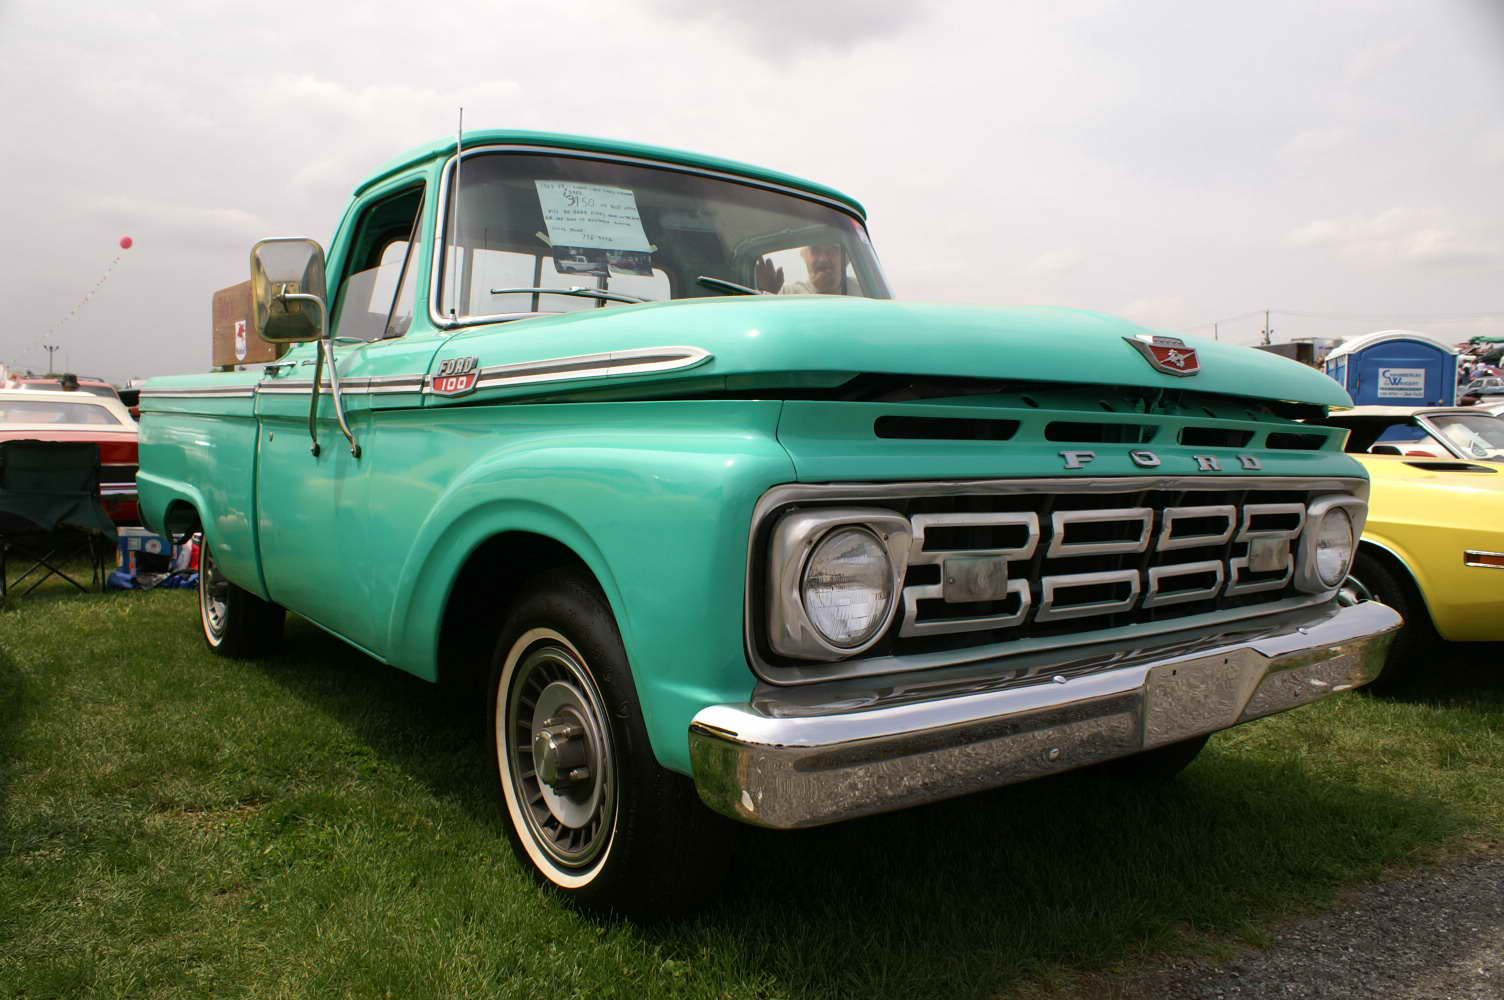 Images about trucks amp cars on pinterest ford trucks and ford trucks - Old Ford Trucks Related Keywords Suggestions Old Ford Trucks Long Tail Keywords